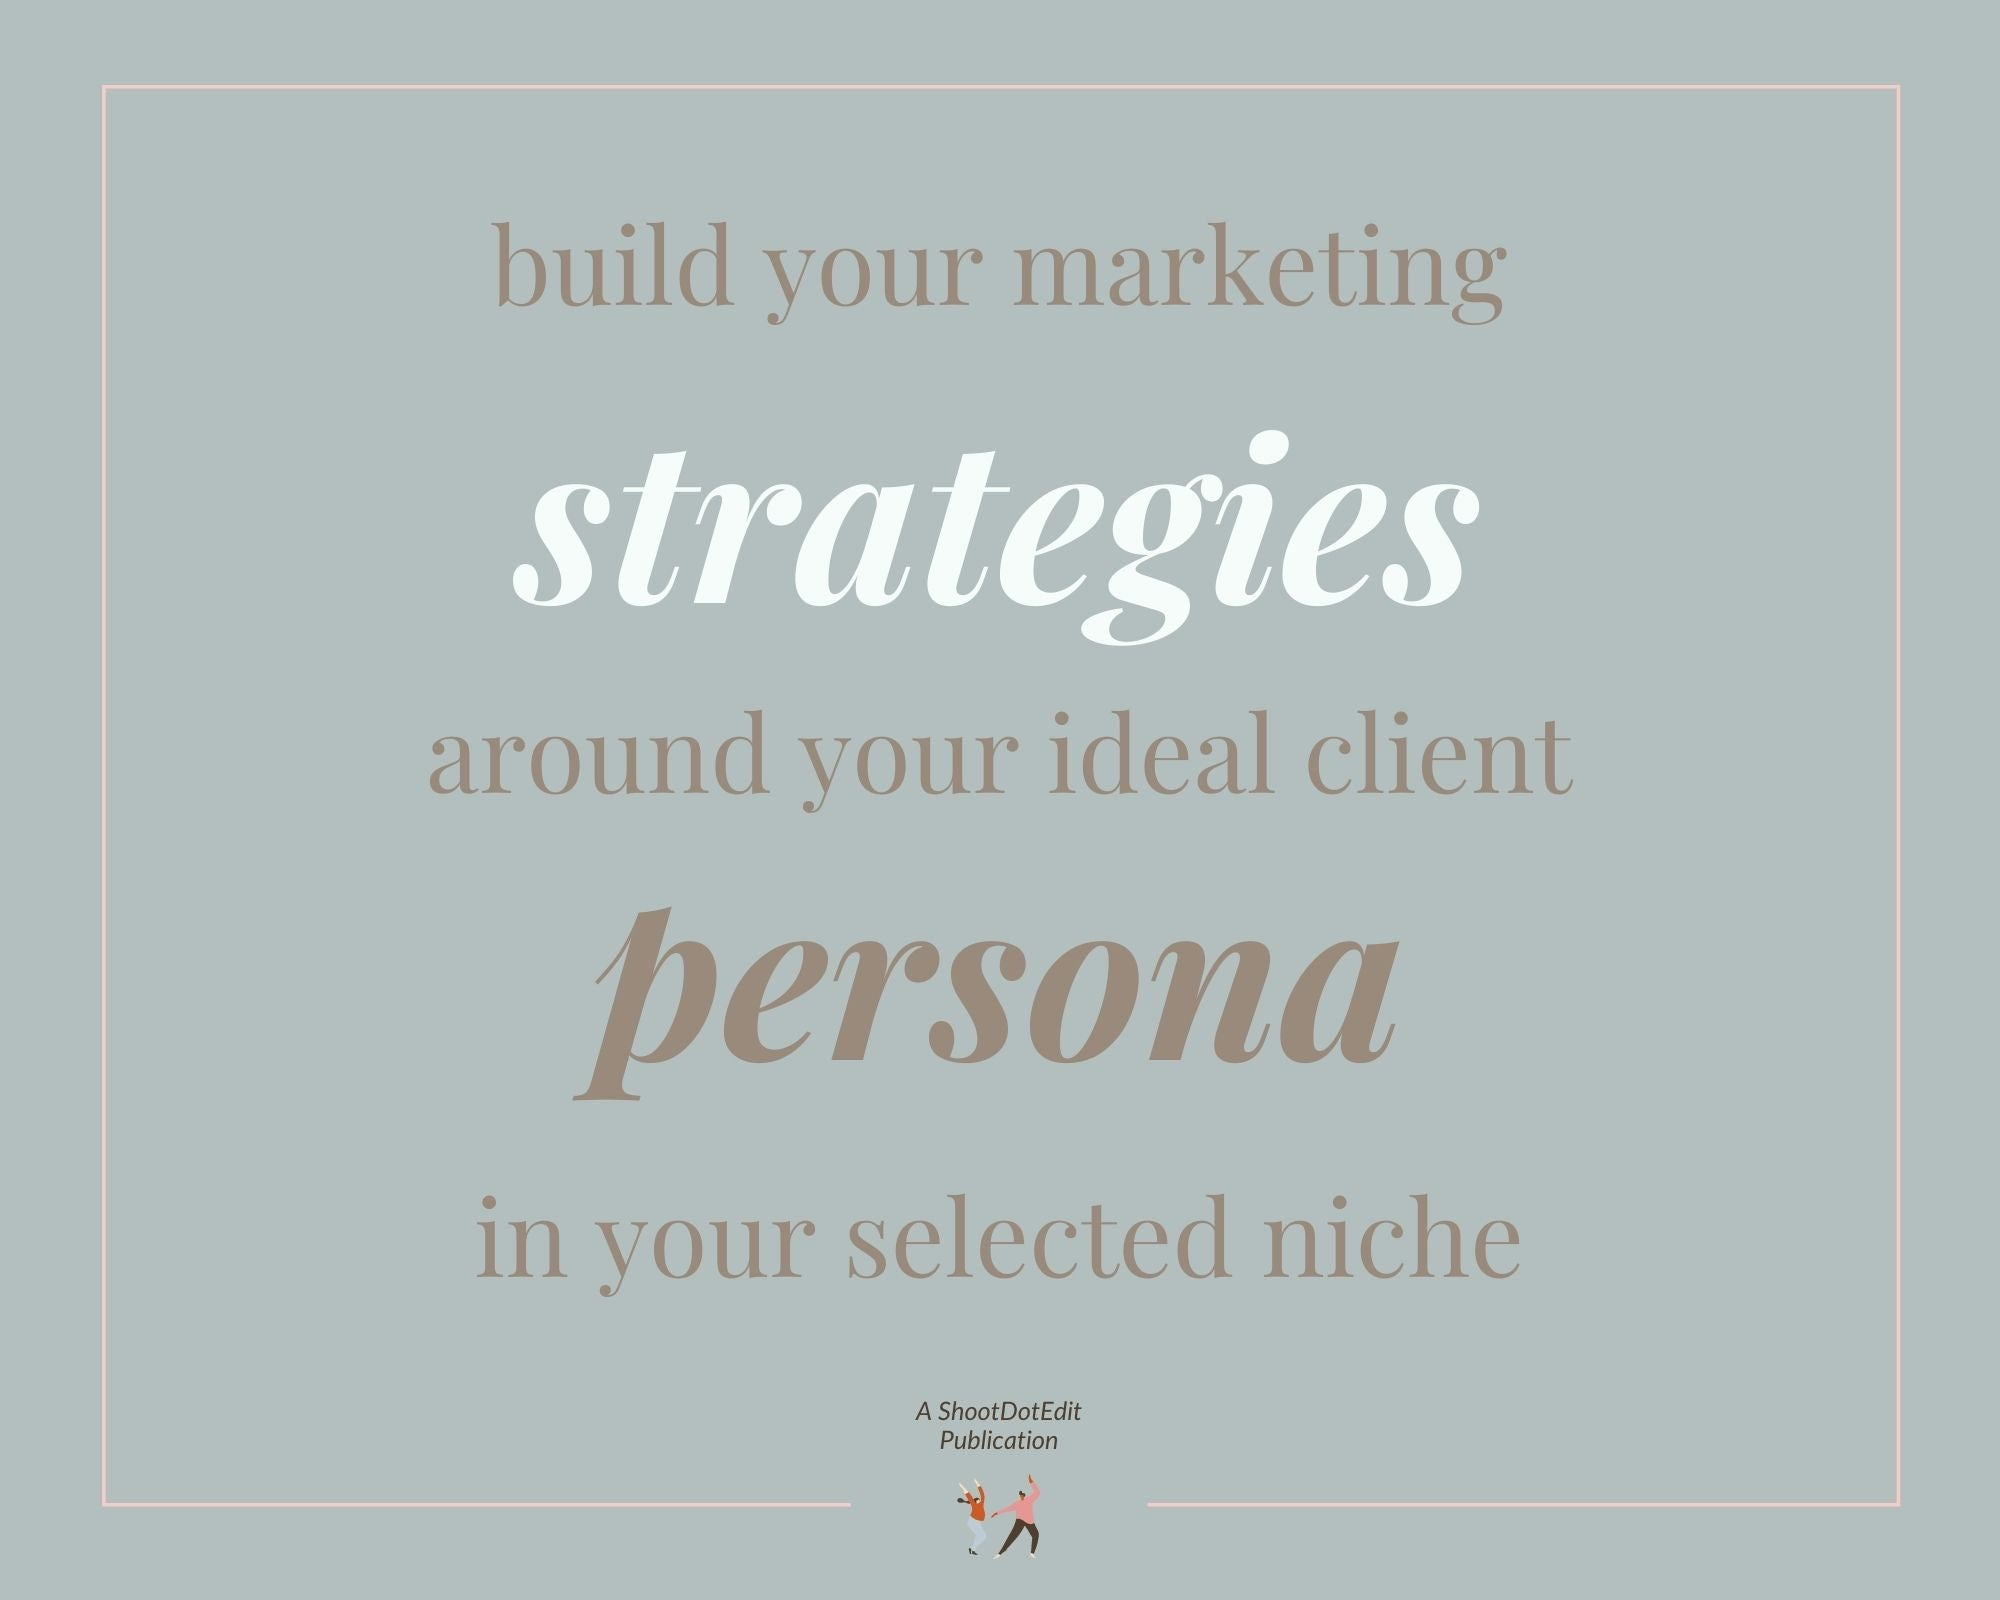 Infographic stating build your marketing strategies around your ideal client persona in your selected niche